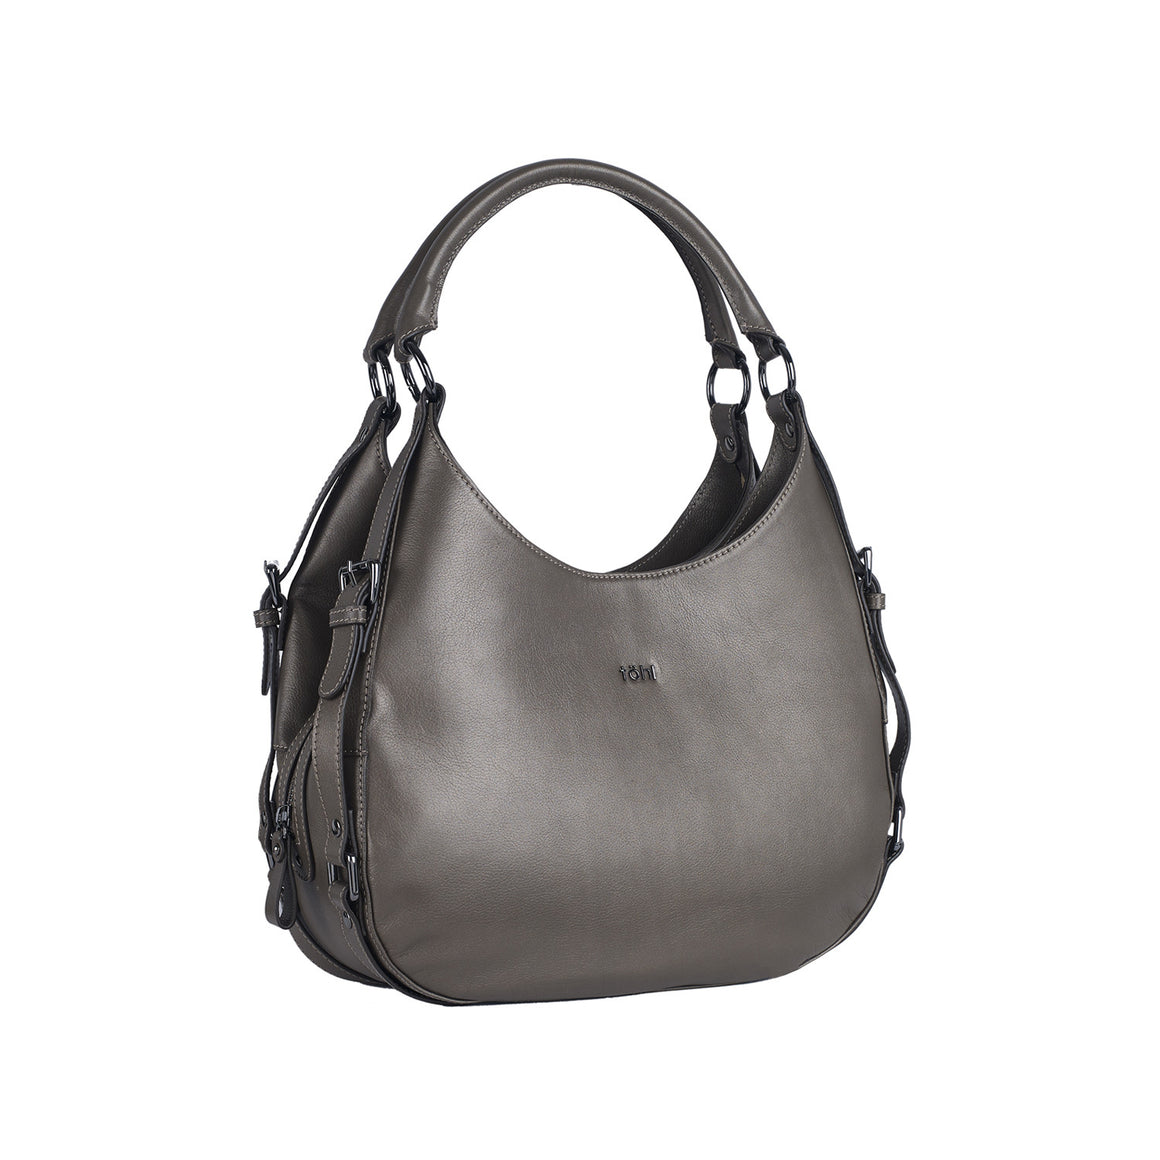 SB 0016 - TOHL KAIA WOMEN'S SHOULDER BAG - METALLIC COPPER